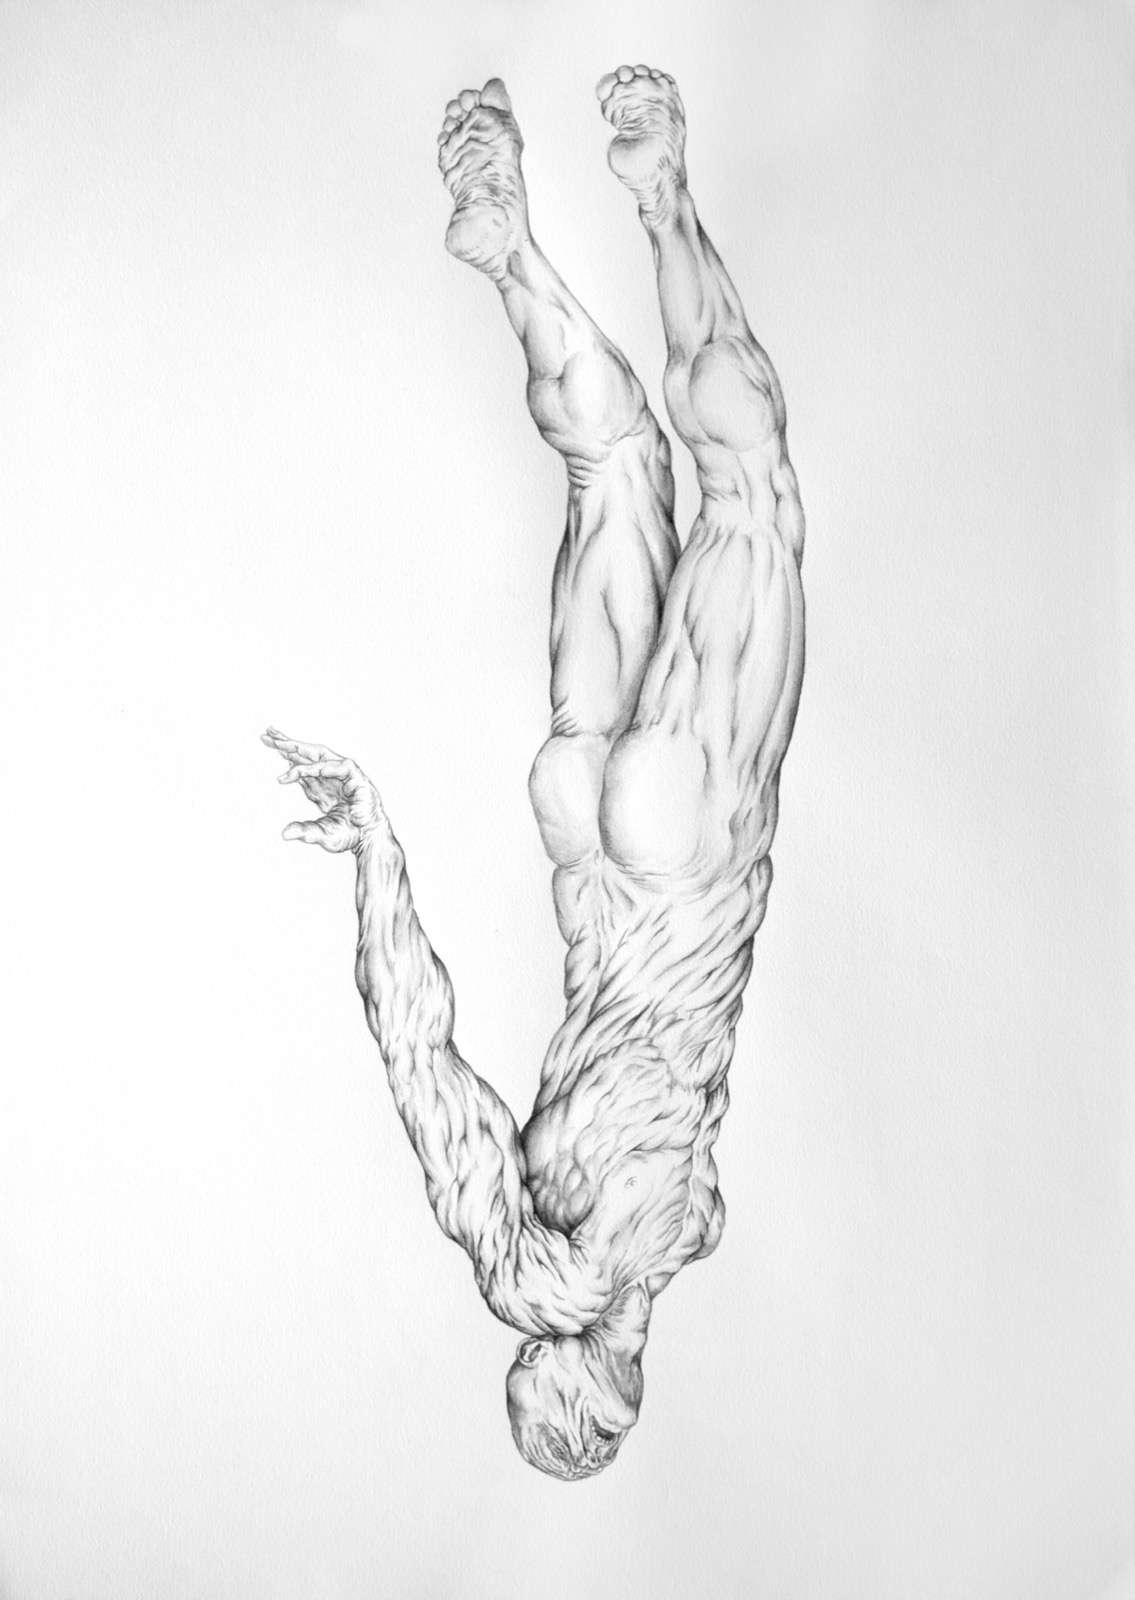 Planktonian People II, 2013, ink on paper, 16.5(h) x 23.25(w) inches